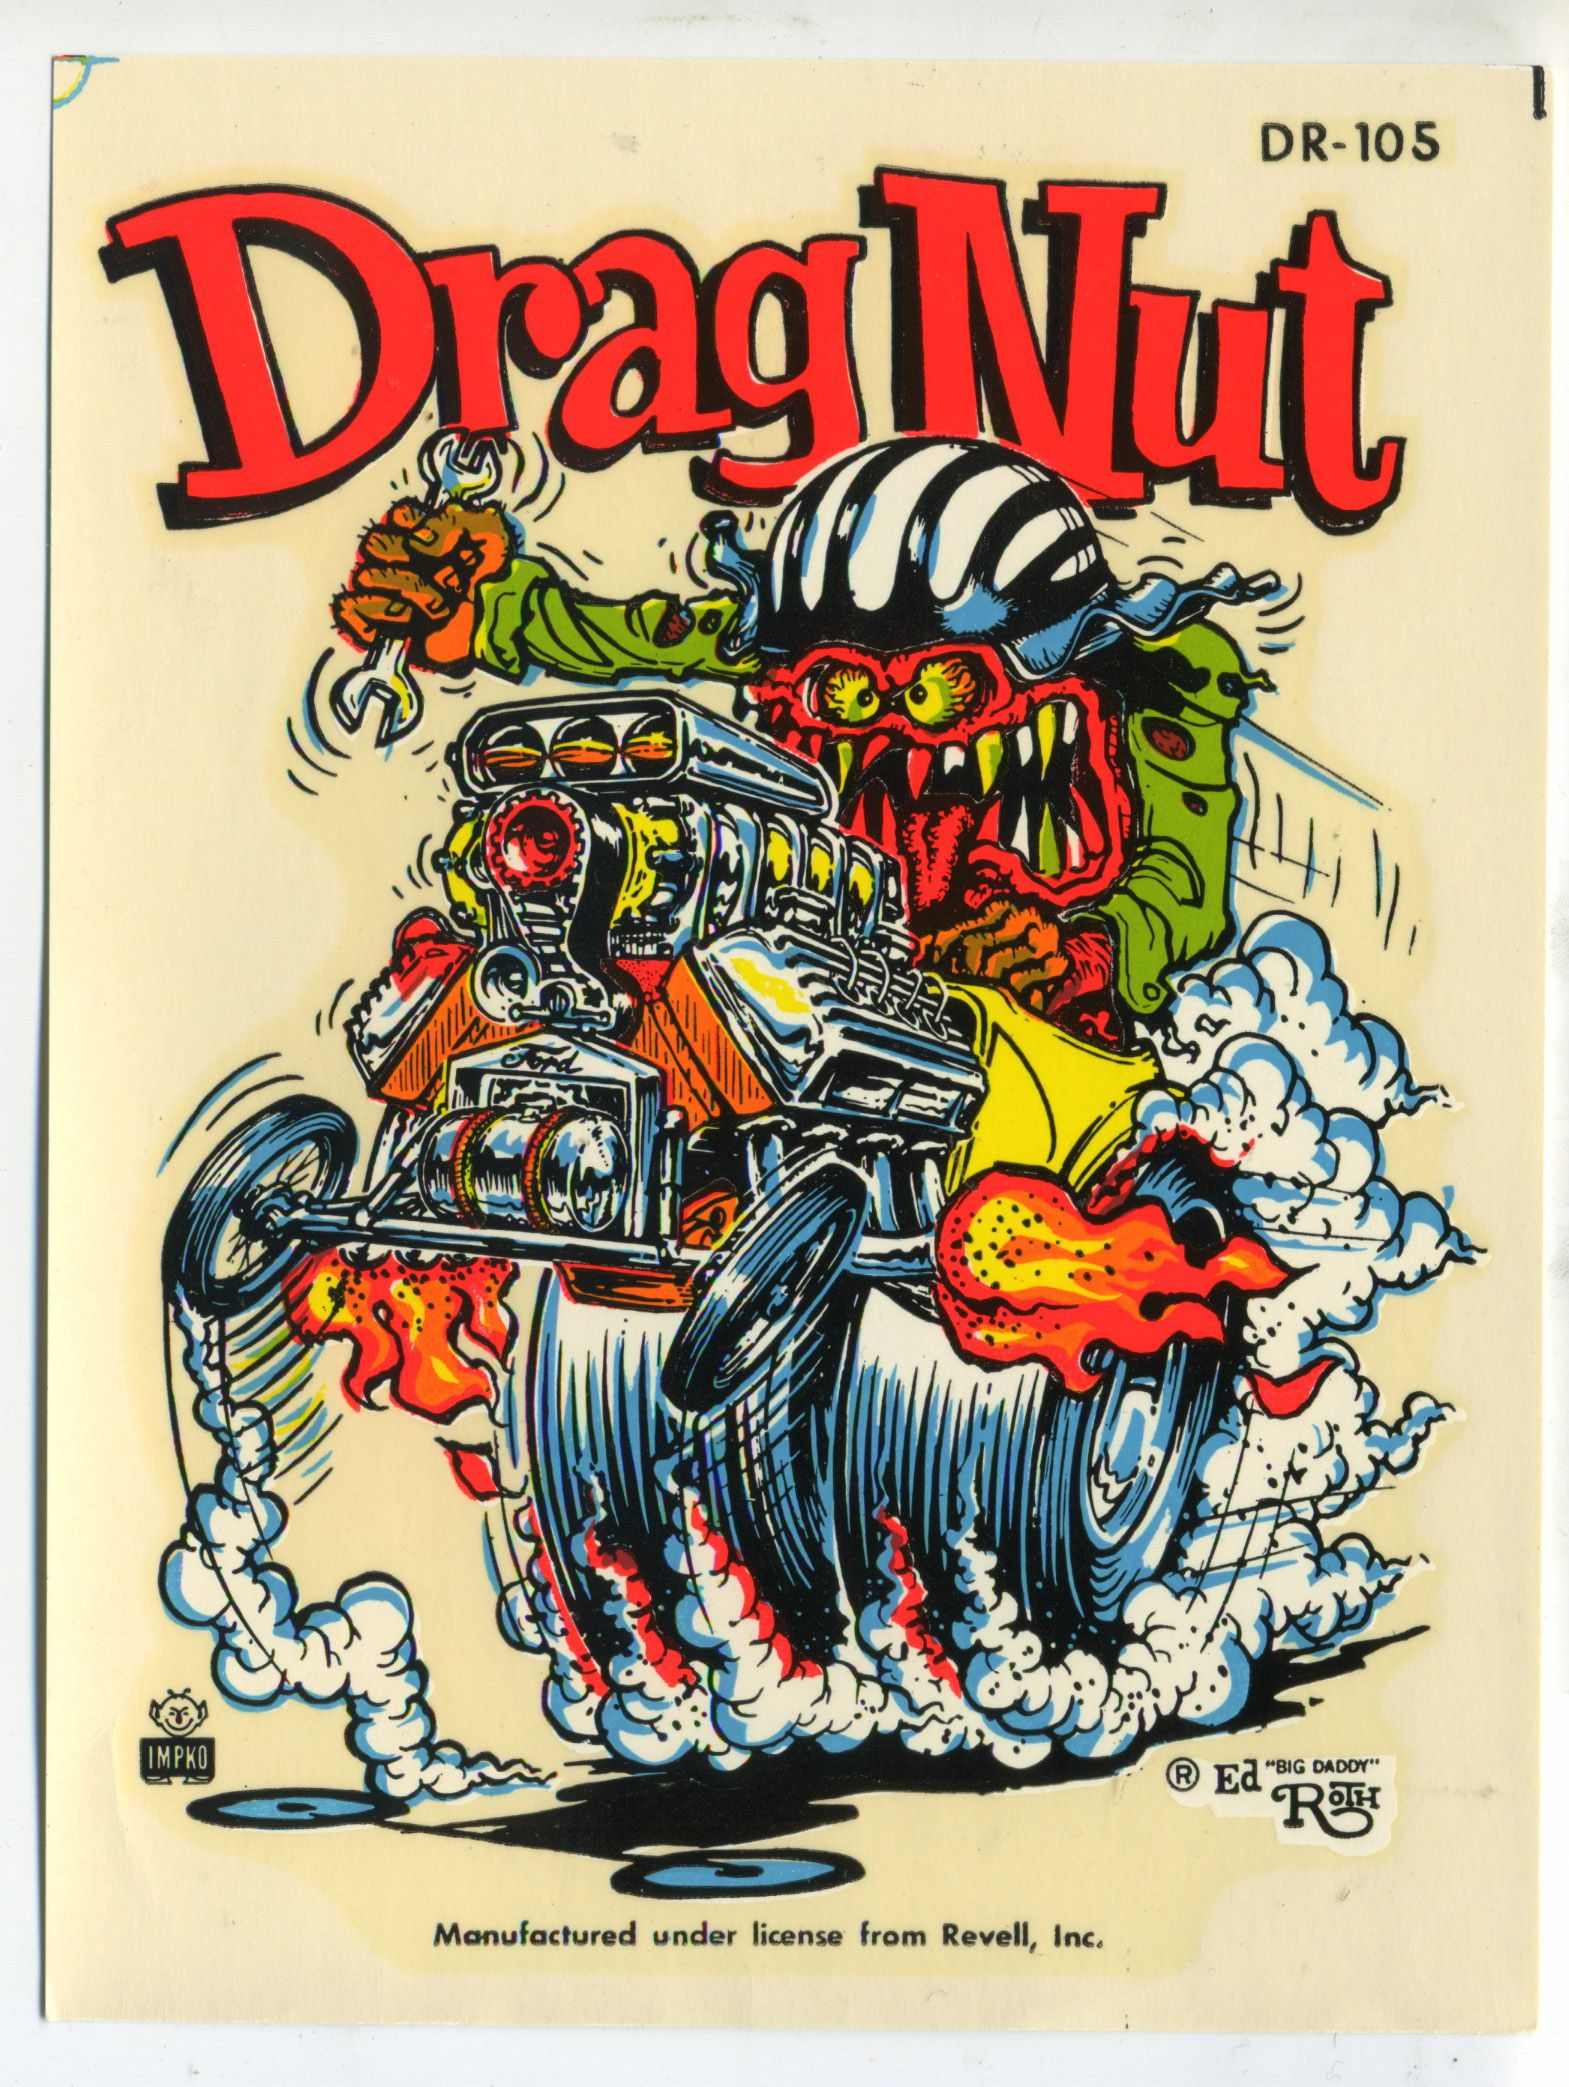 American Hippie Art Rat Fink Ed Roth . Drag Nut Rats